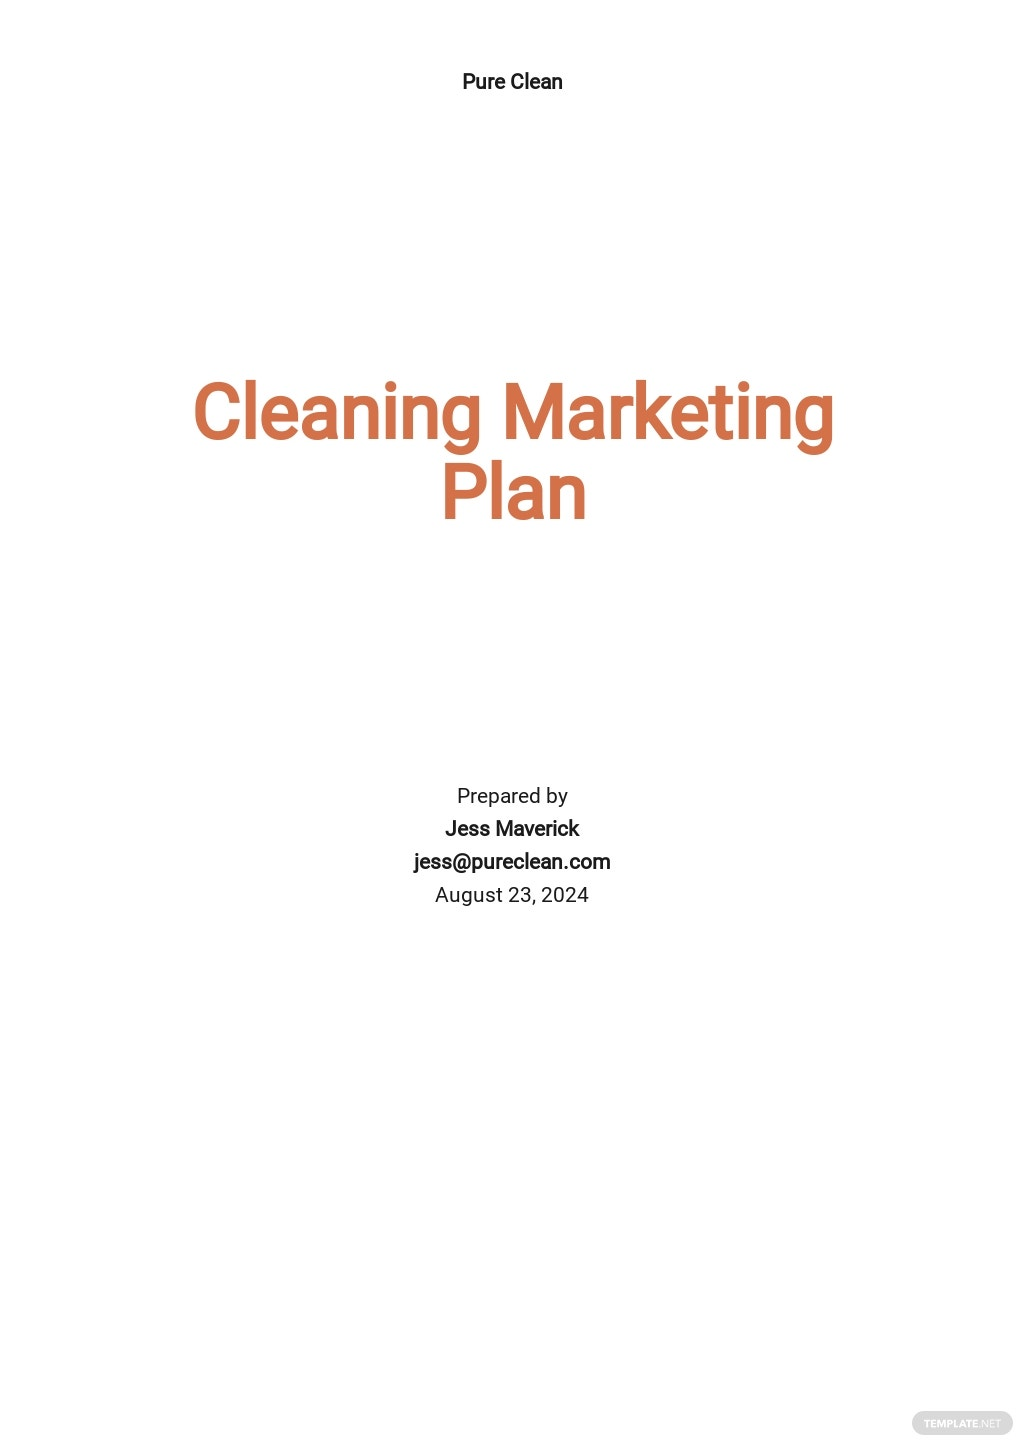 Cleaning or Janitorial Marketing Plan Template.jpe